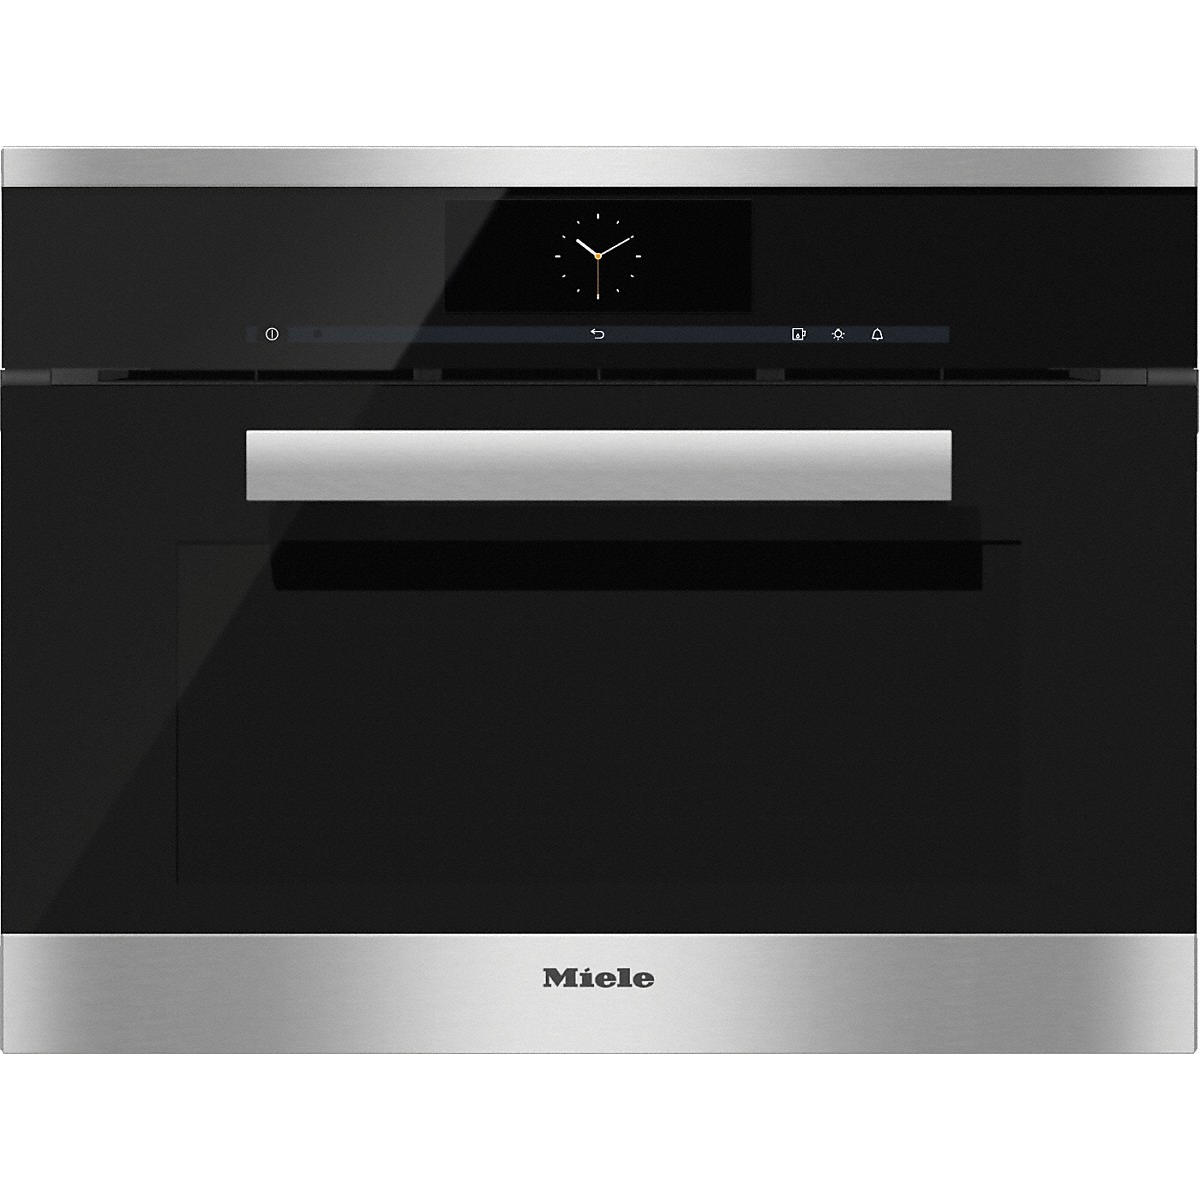 Miele DGC 6805 XL CLST Clean Steel Steam Combination Oven